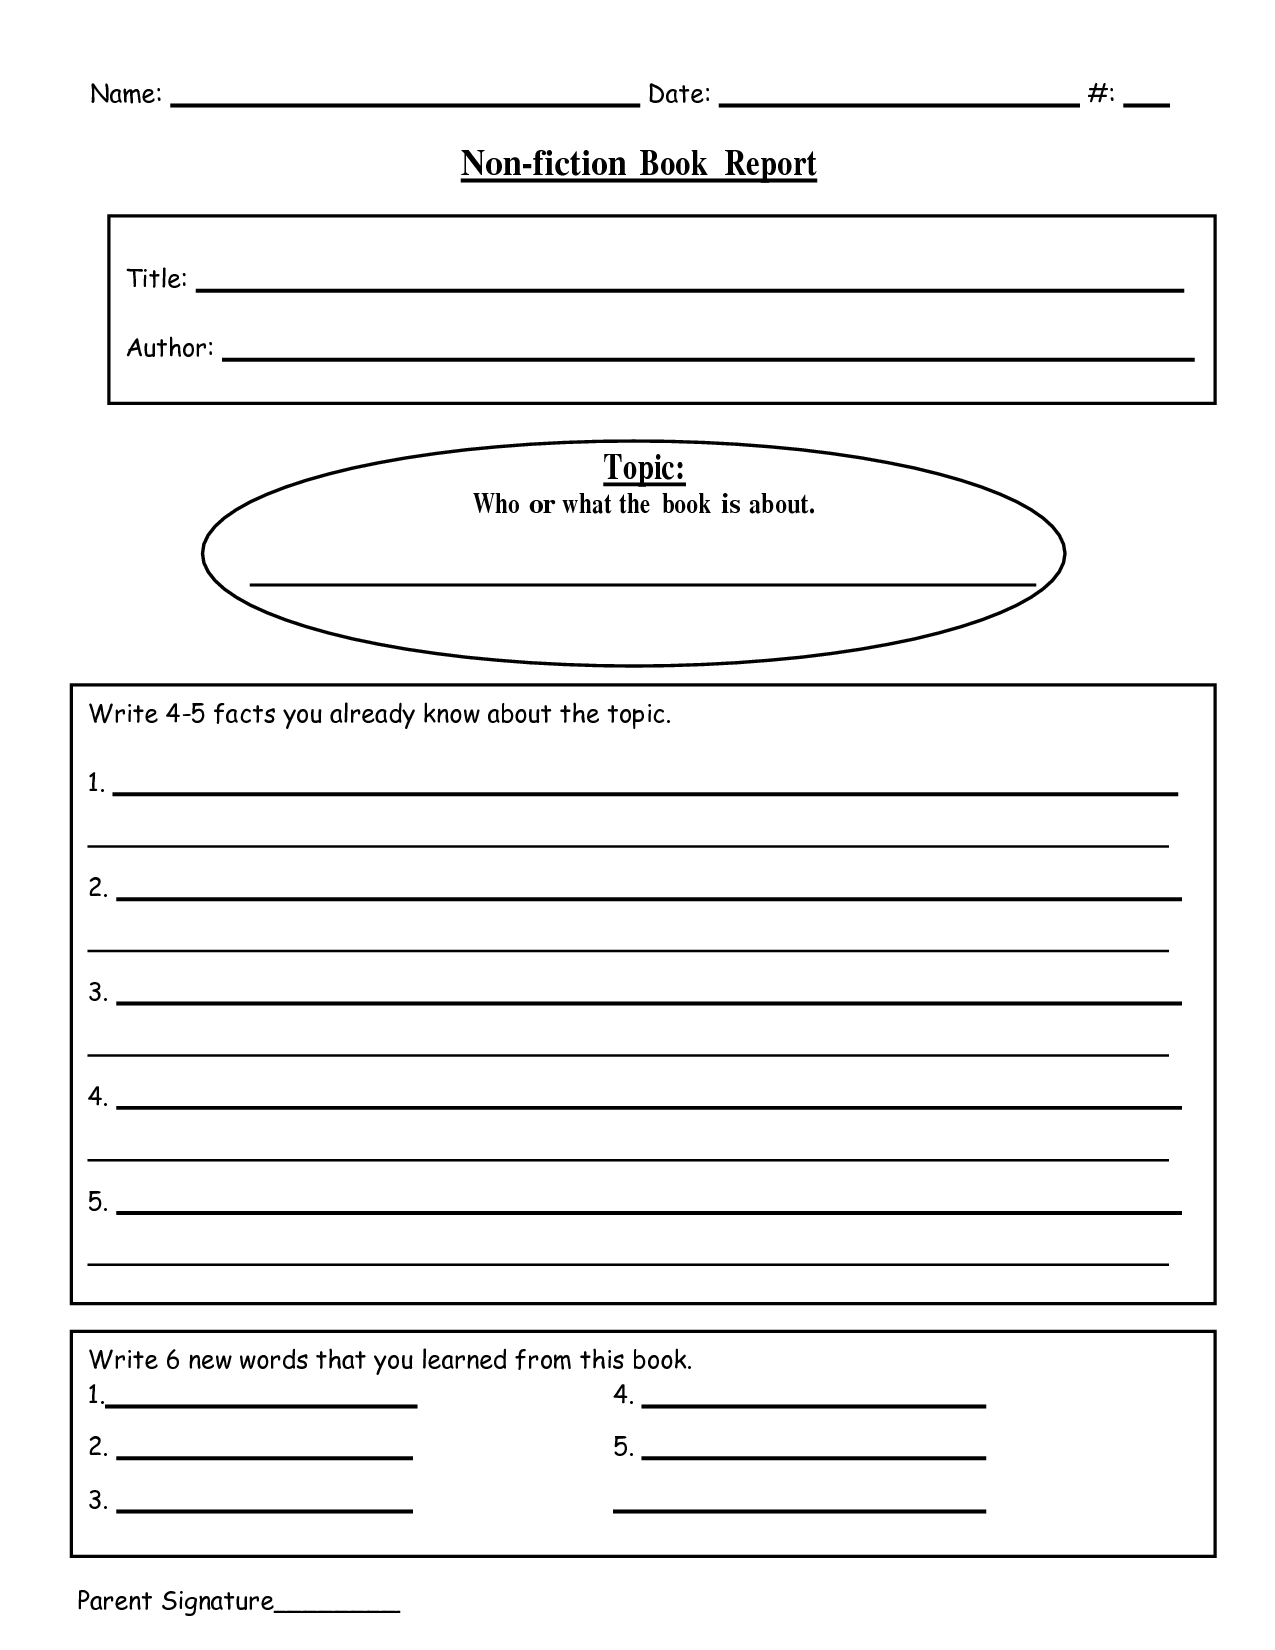 Free Printable Book Report Templates   Non-Fiction Book Report.doc - Free Printable Book Report Forms For Elementary Students